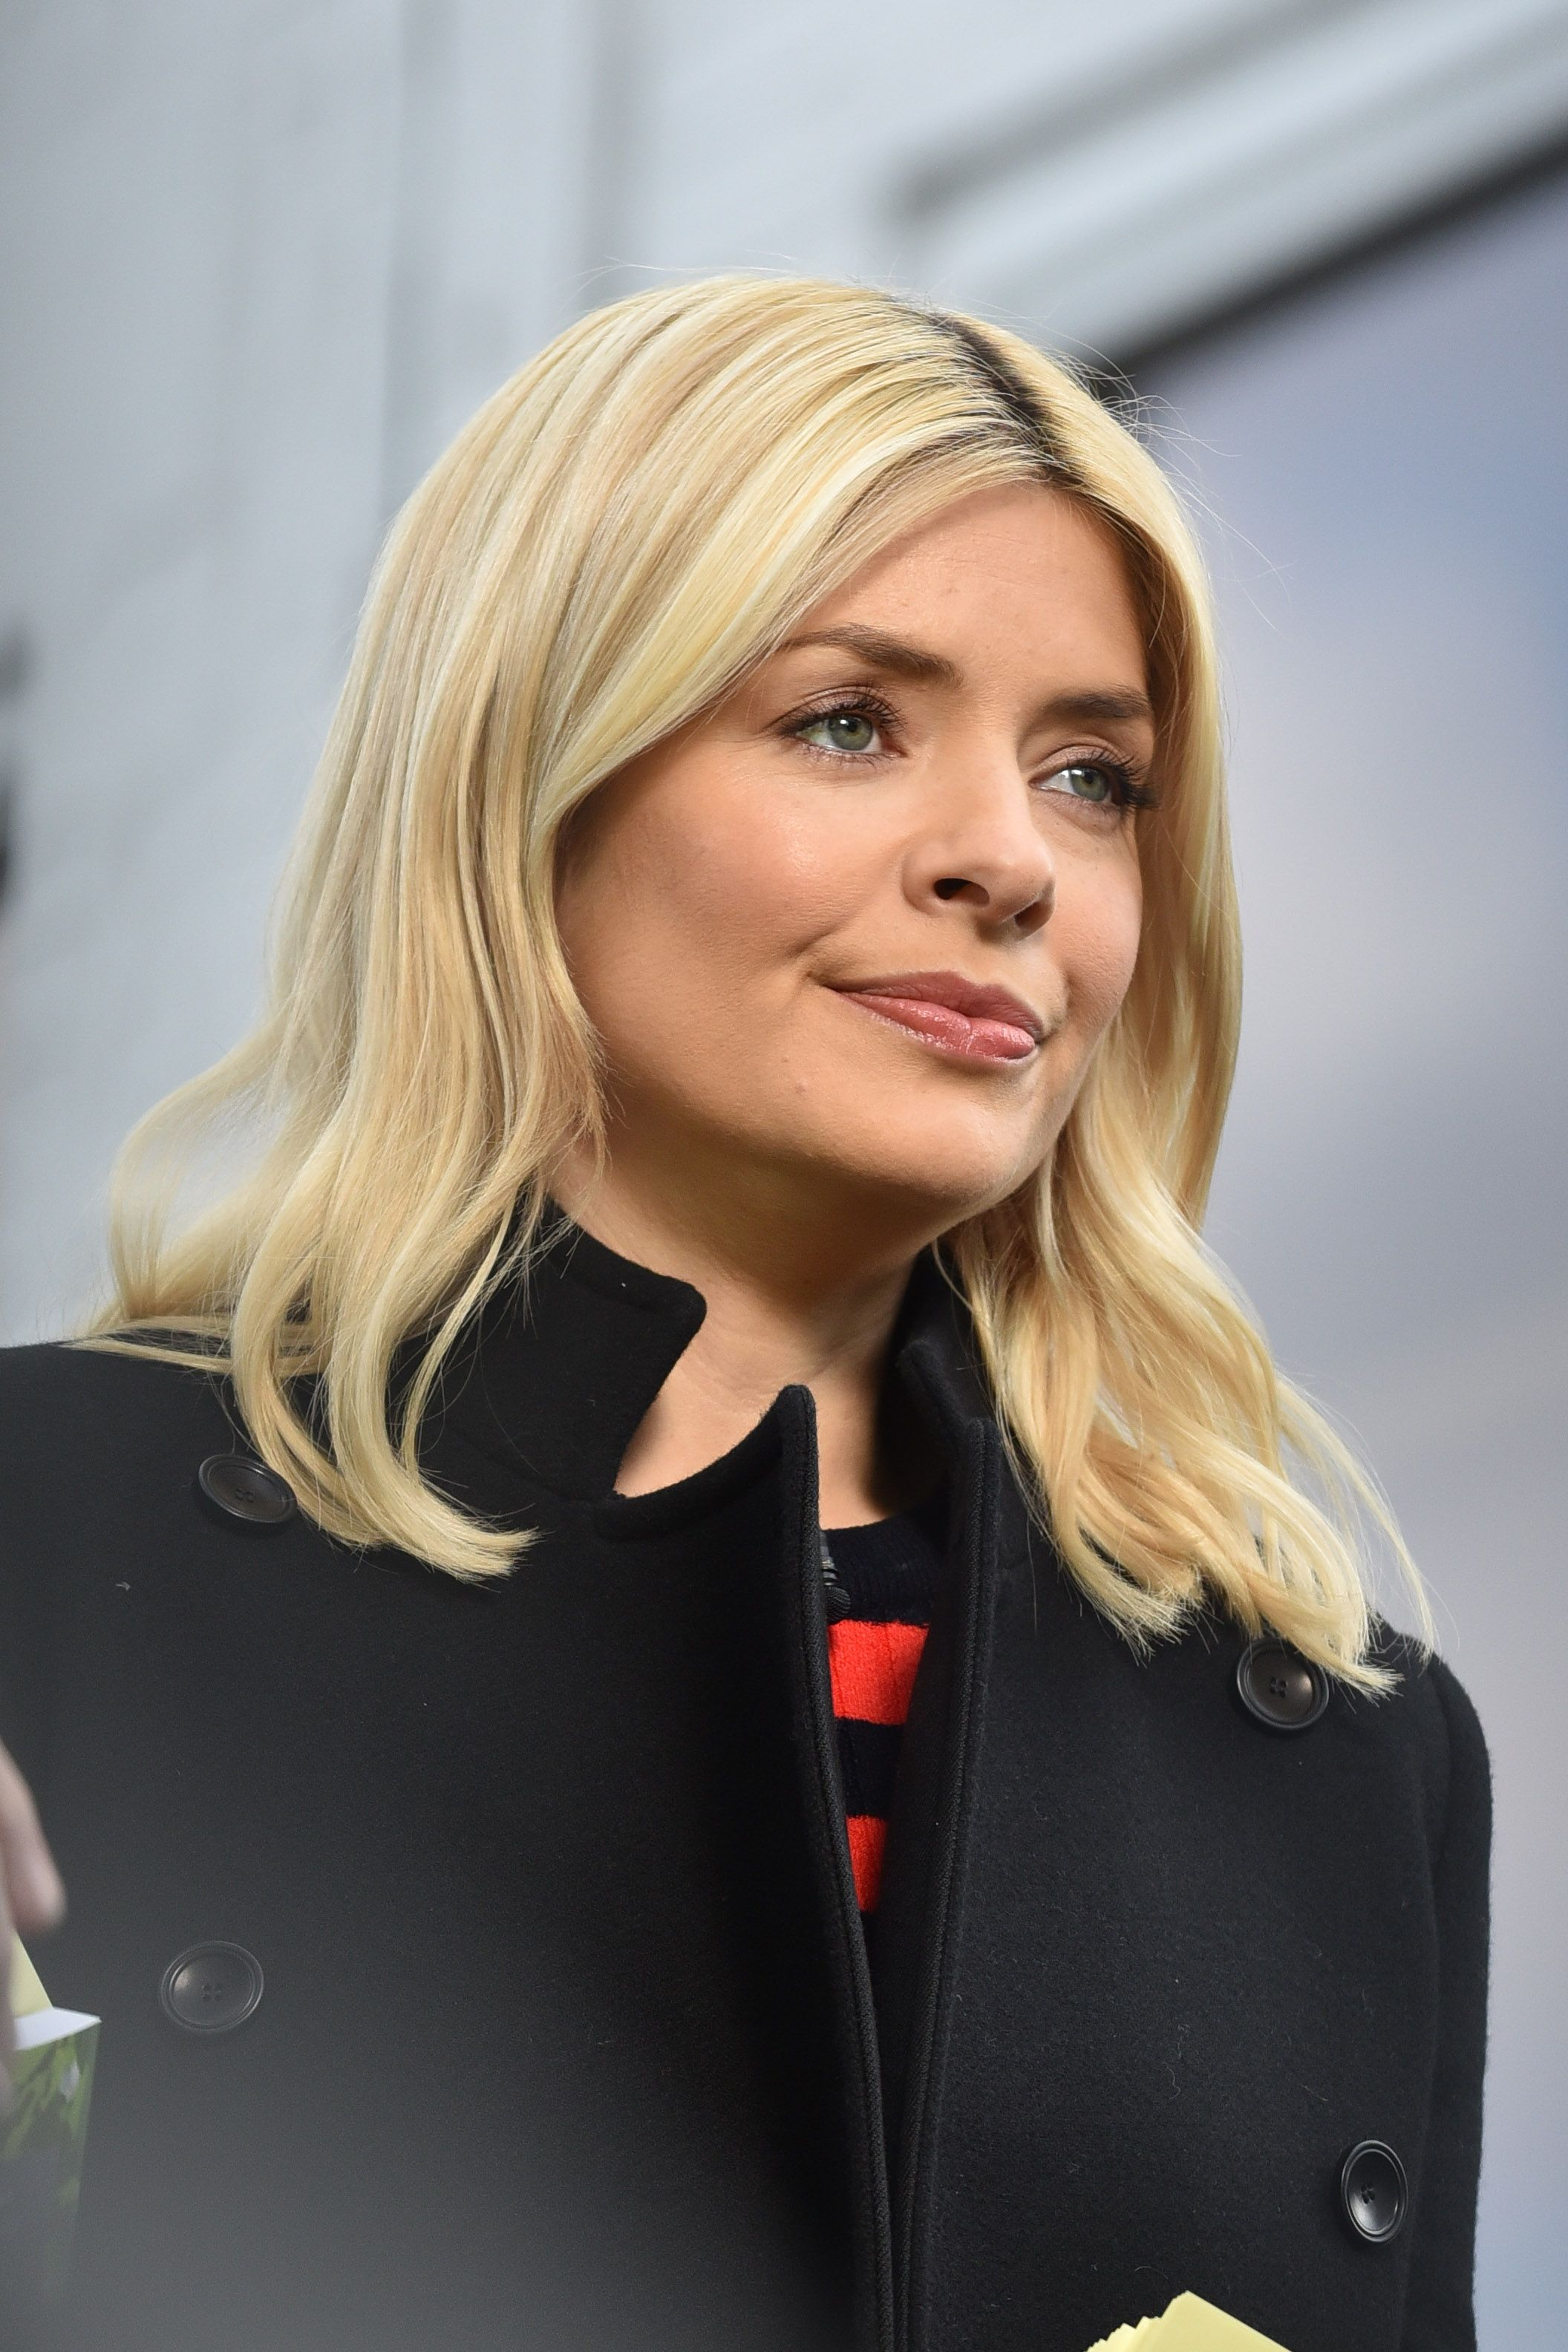 Pics Holly Willoughby nudes (49 photo), Boobs